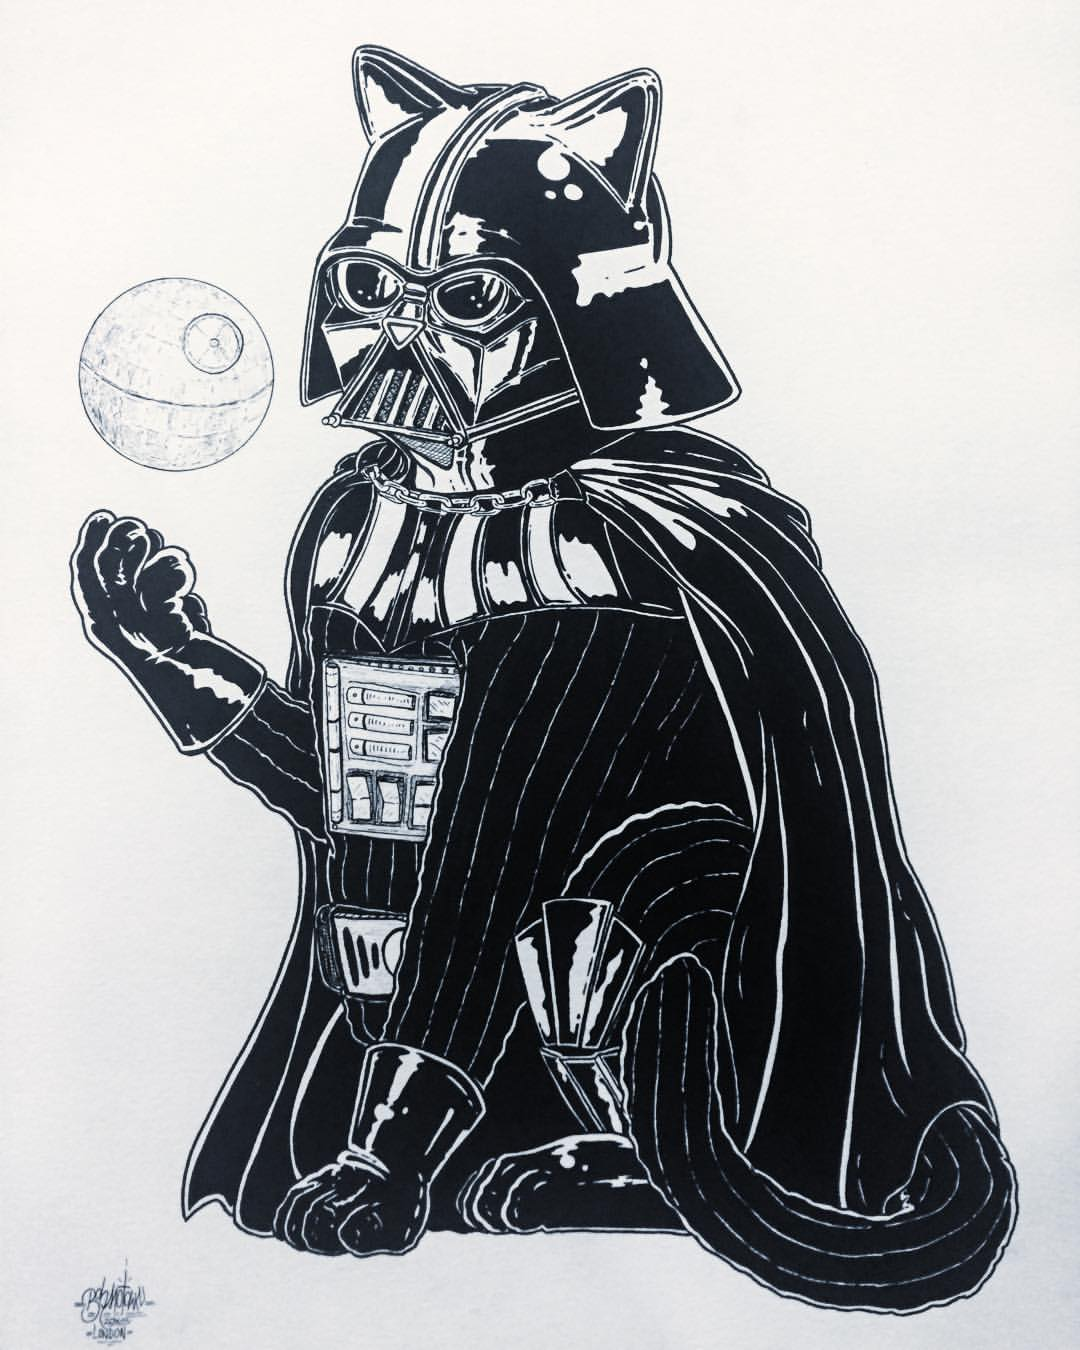 CATakin Skywalker. Darth VadeFUR. ink on expensive feeling watercolour paper. 50 x 70 cm (metric is cool now, deal with it 😎). 2015.